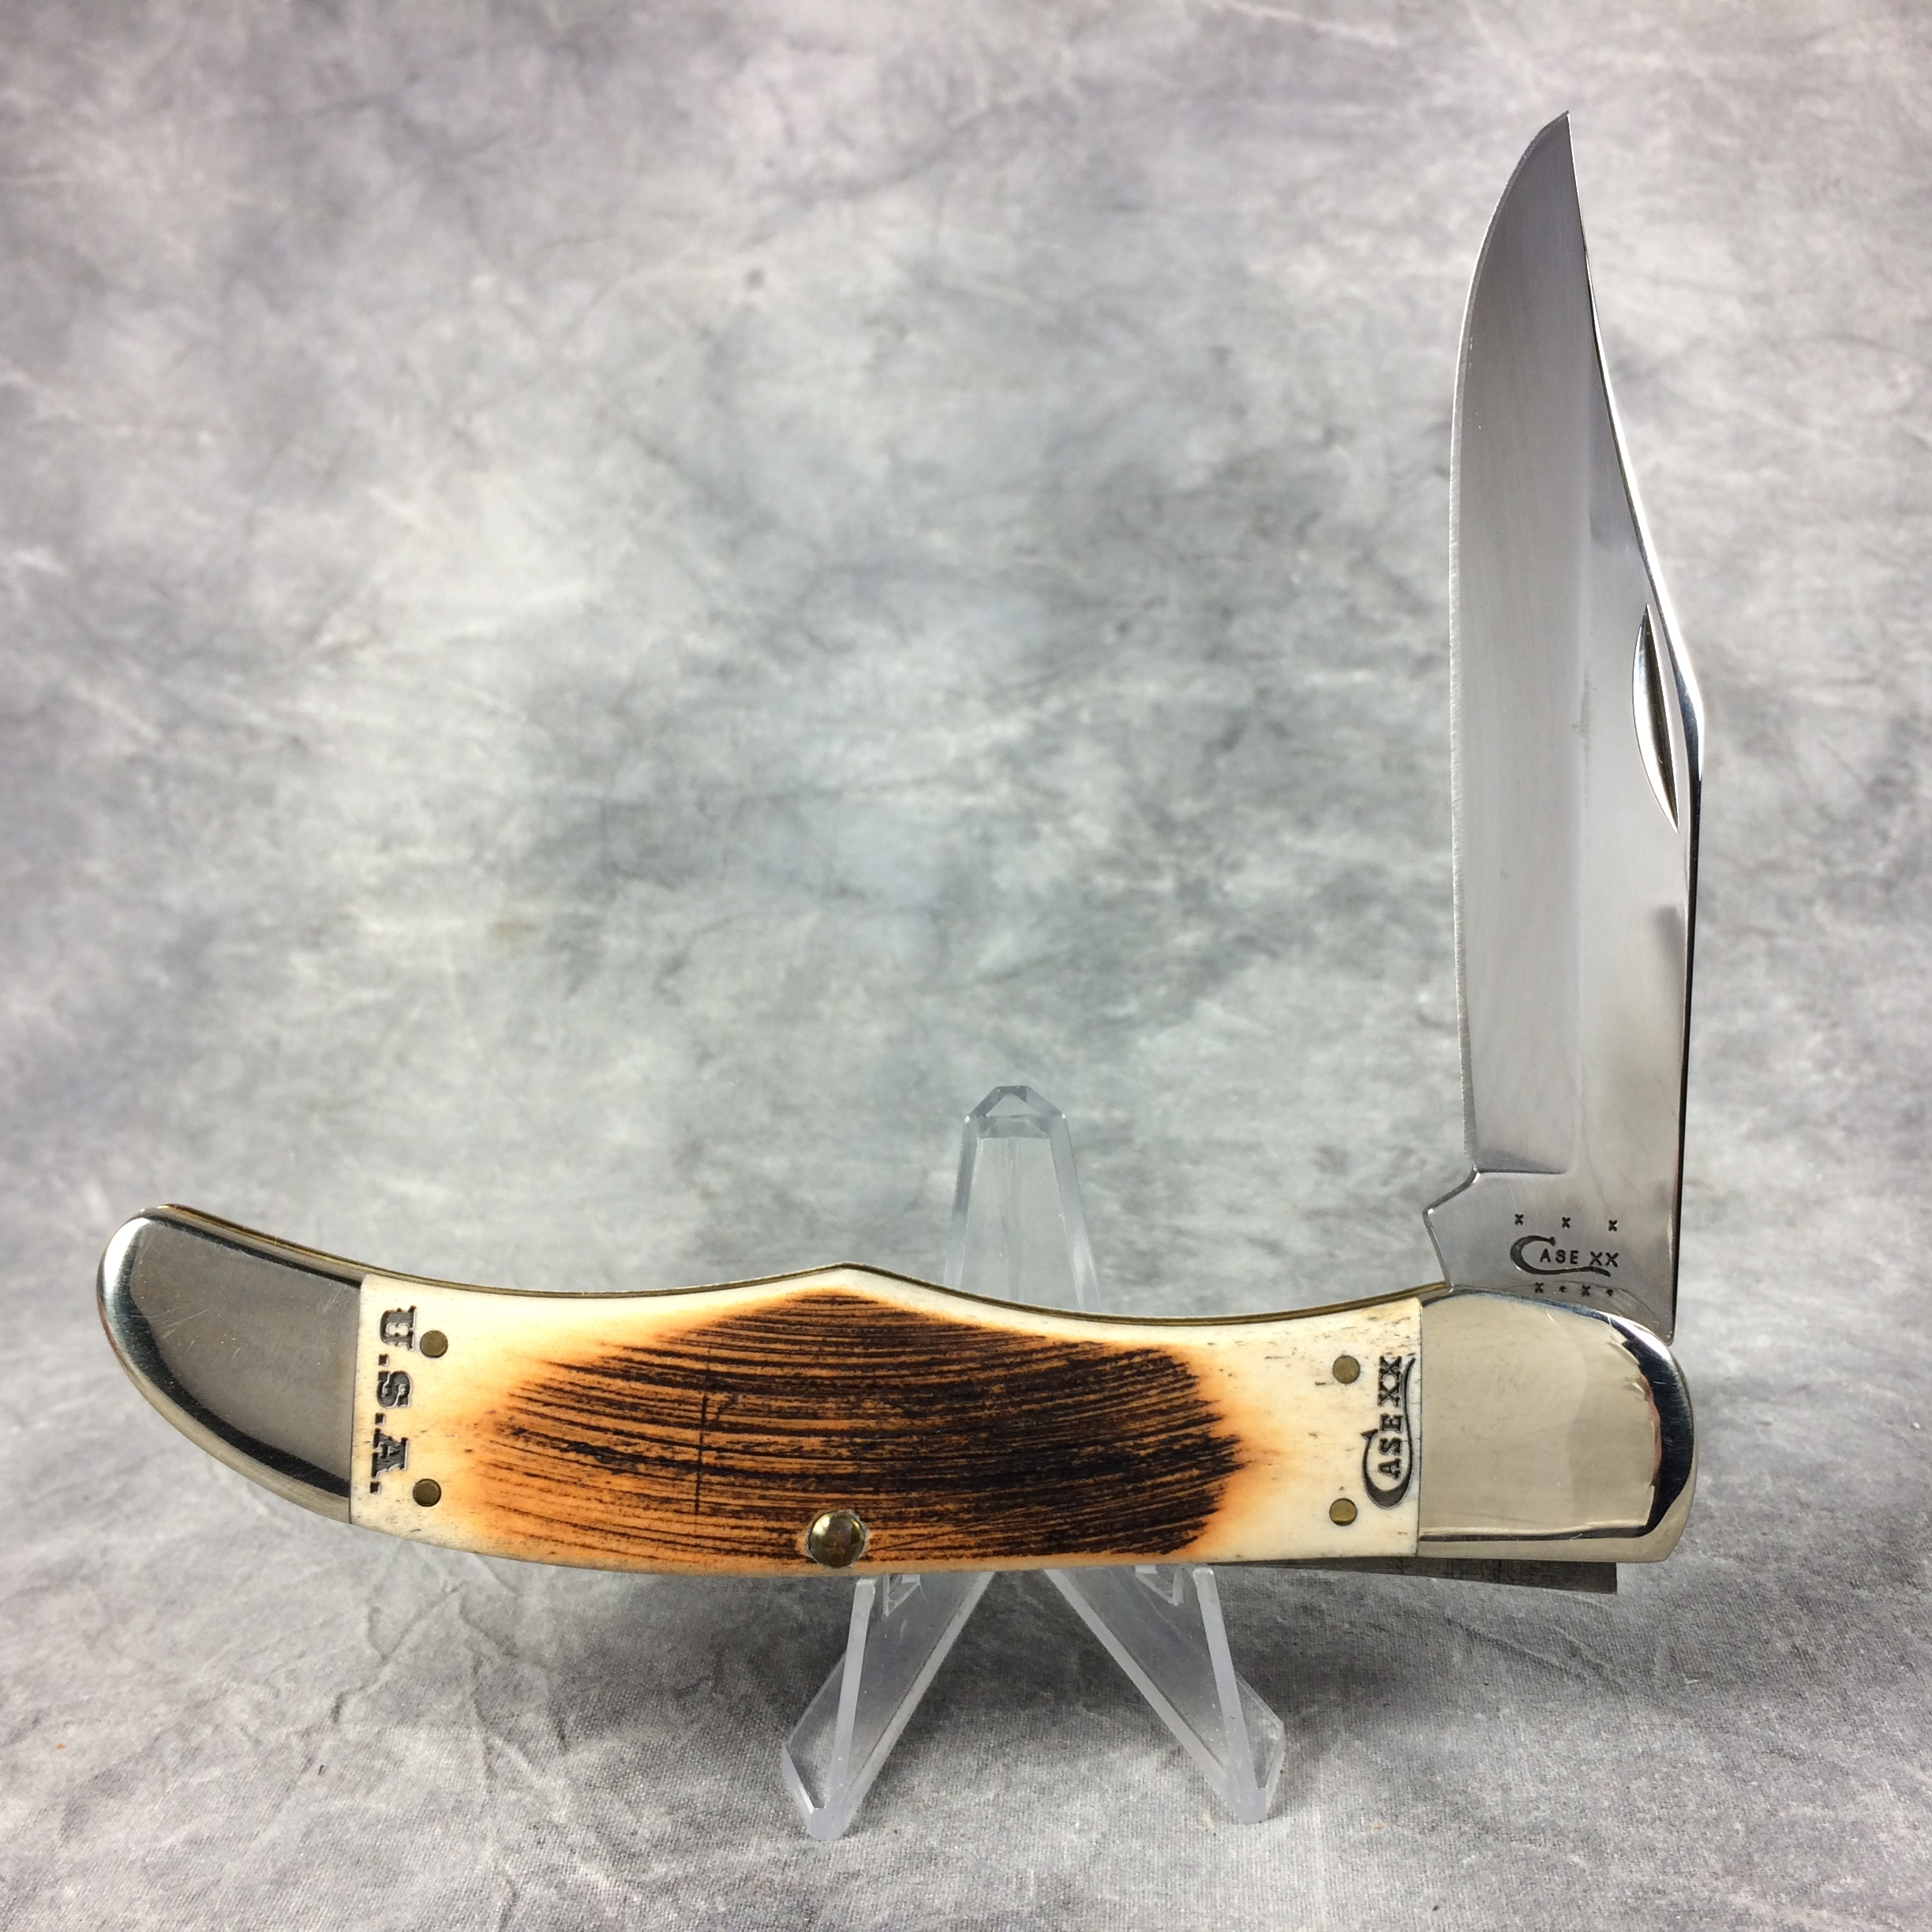 2014 case xx 6165 cv amber bone hunter folding pocket